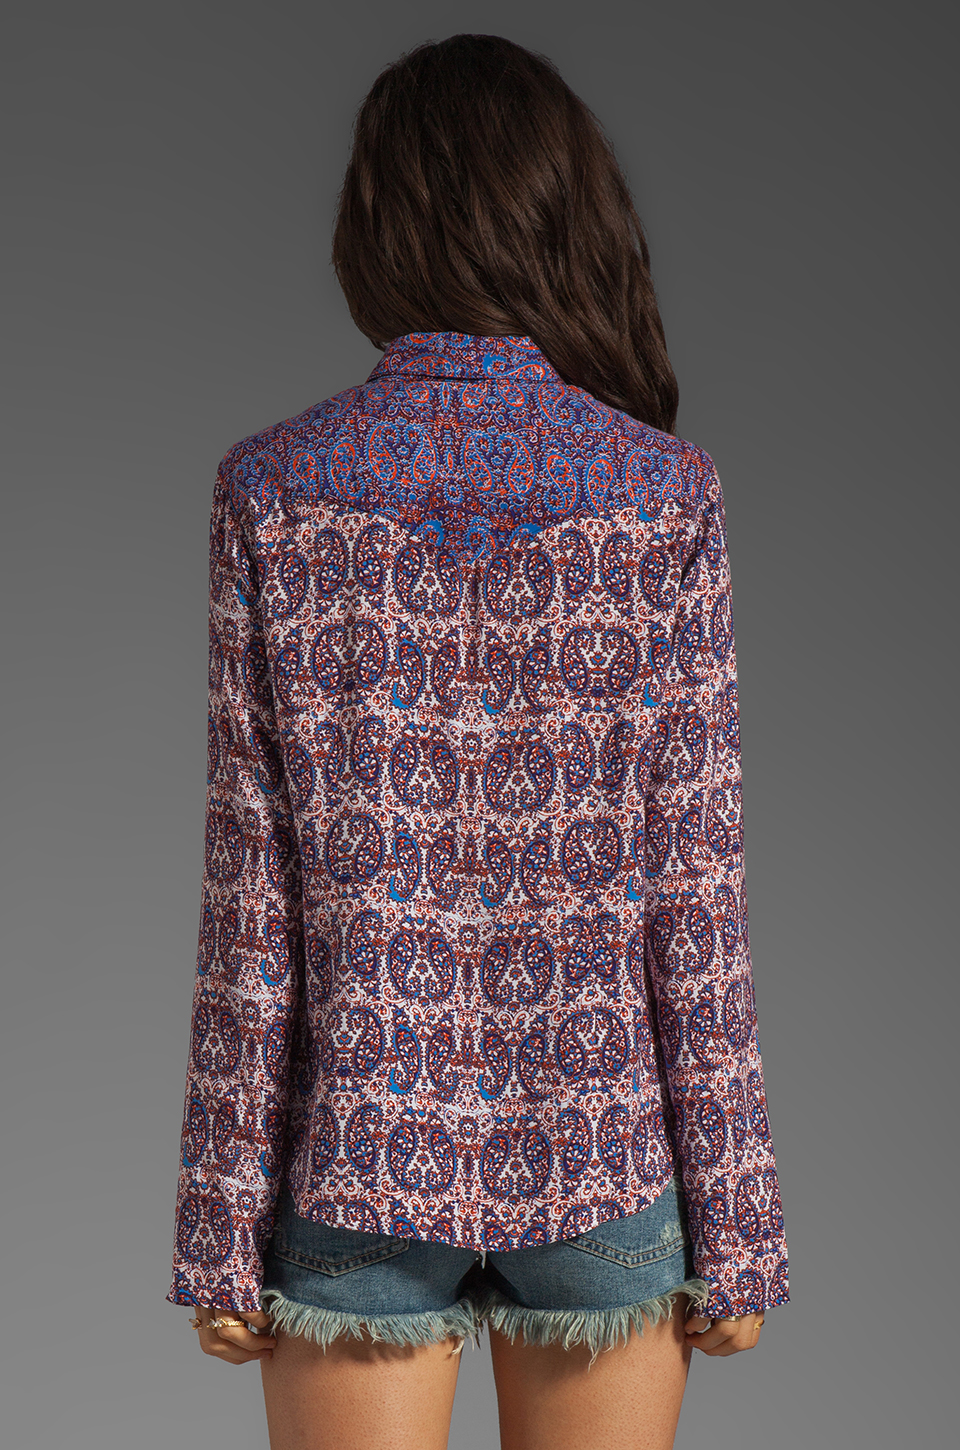 Ella Moss Kasbah Paisley Button Up in Royal